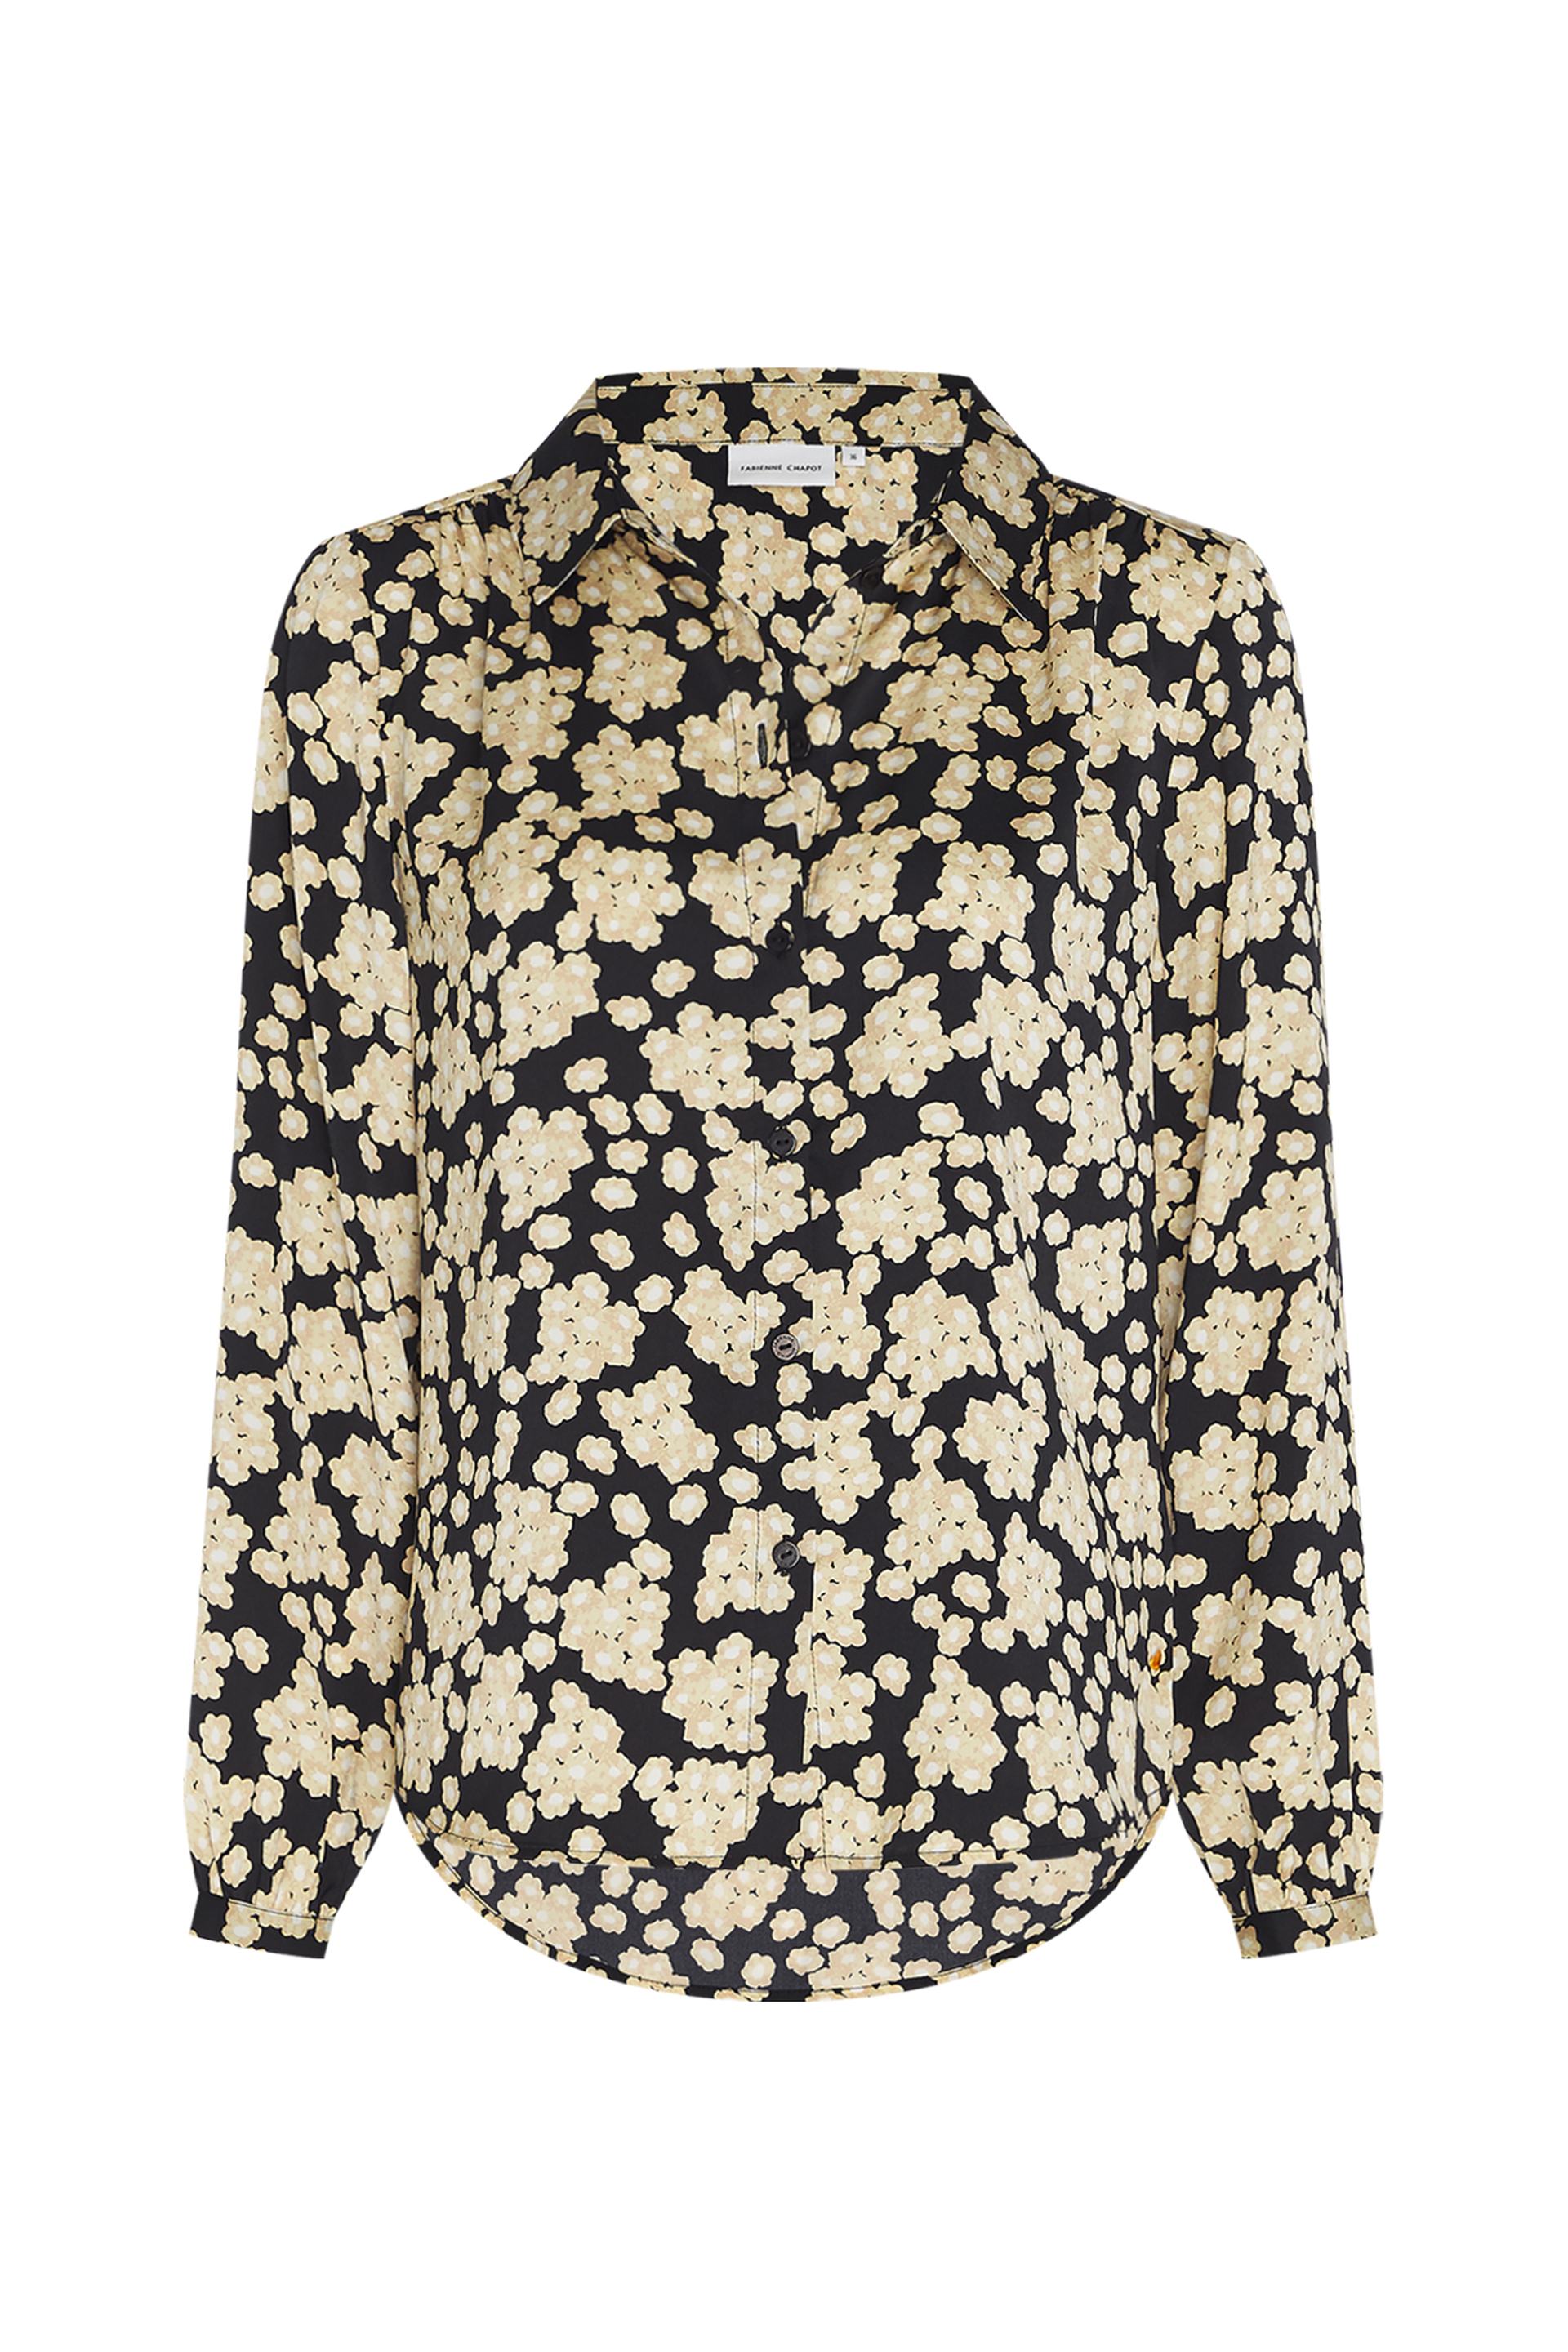 Fabienne Chapot Mira Blouse in Blossom Bouquet Black